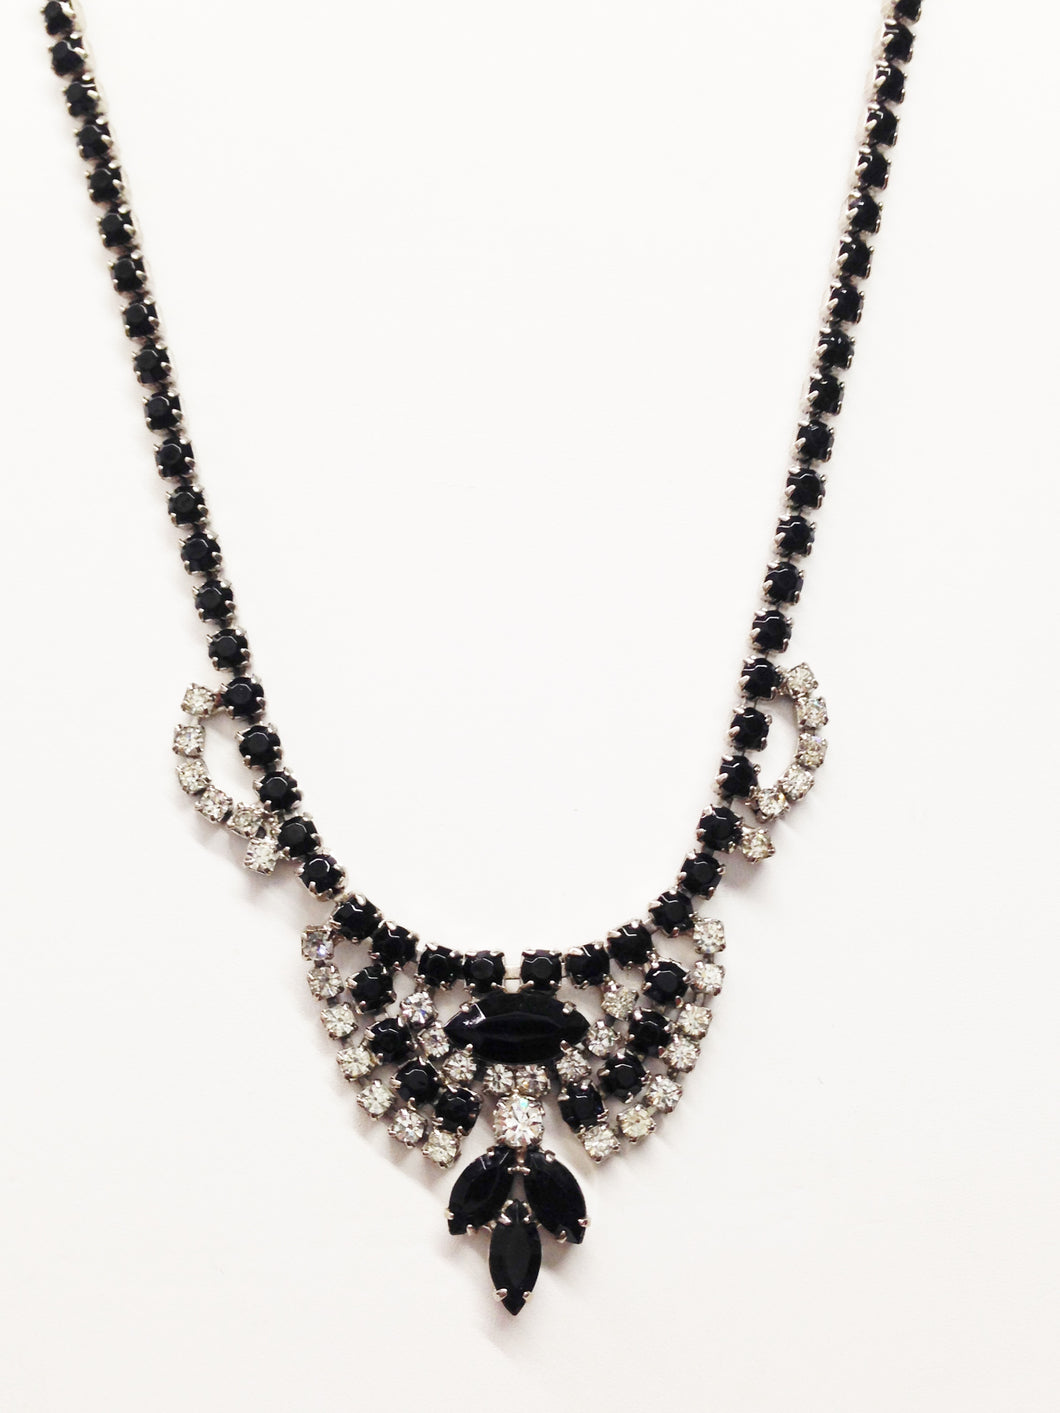 1950's Rhinestone Bib Necklace